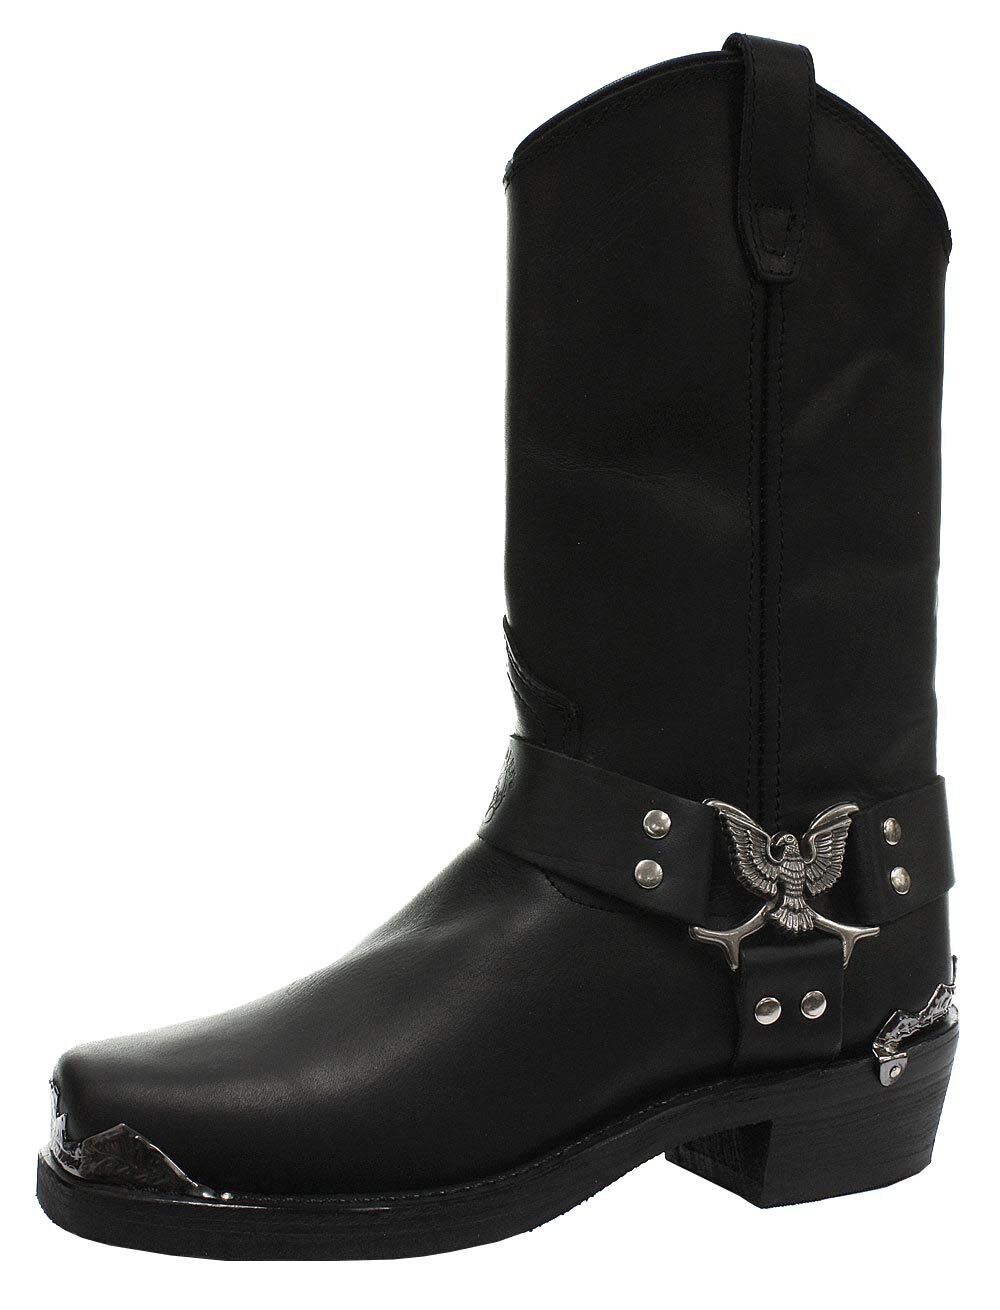 New Grinders Eagle Hi Black Unisex Leather Boot Cowboy Western Bikers High Boots